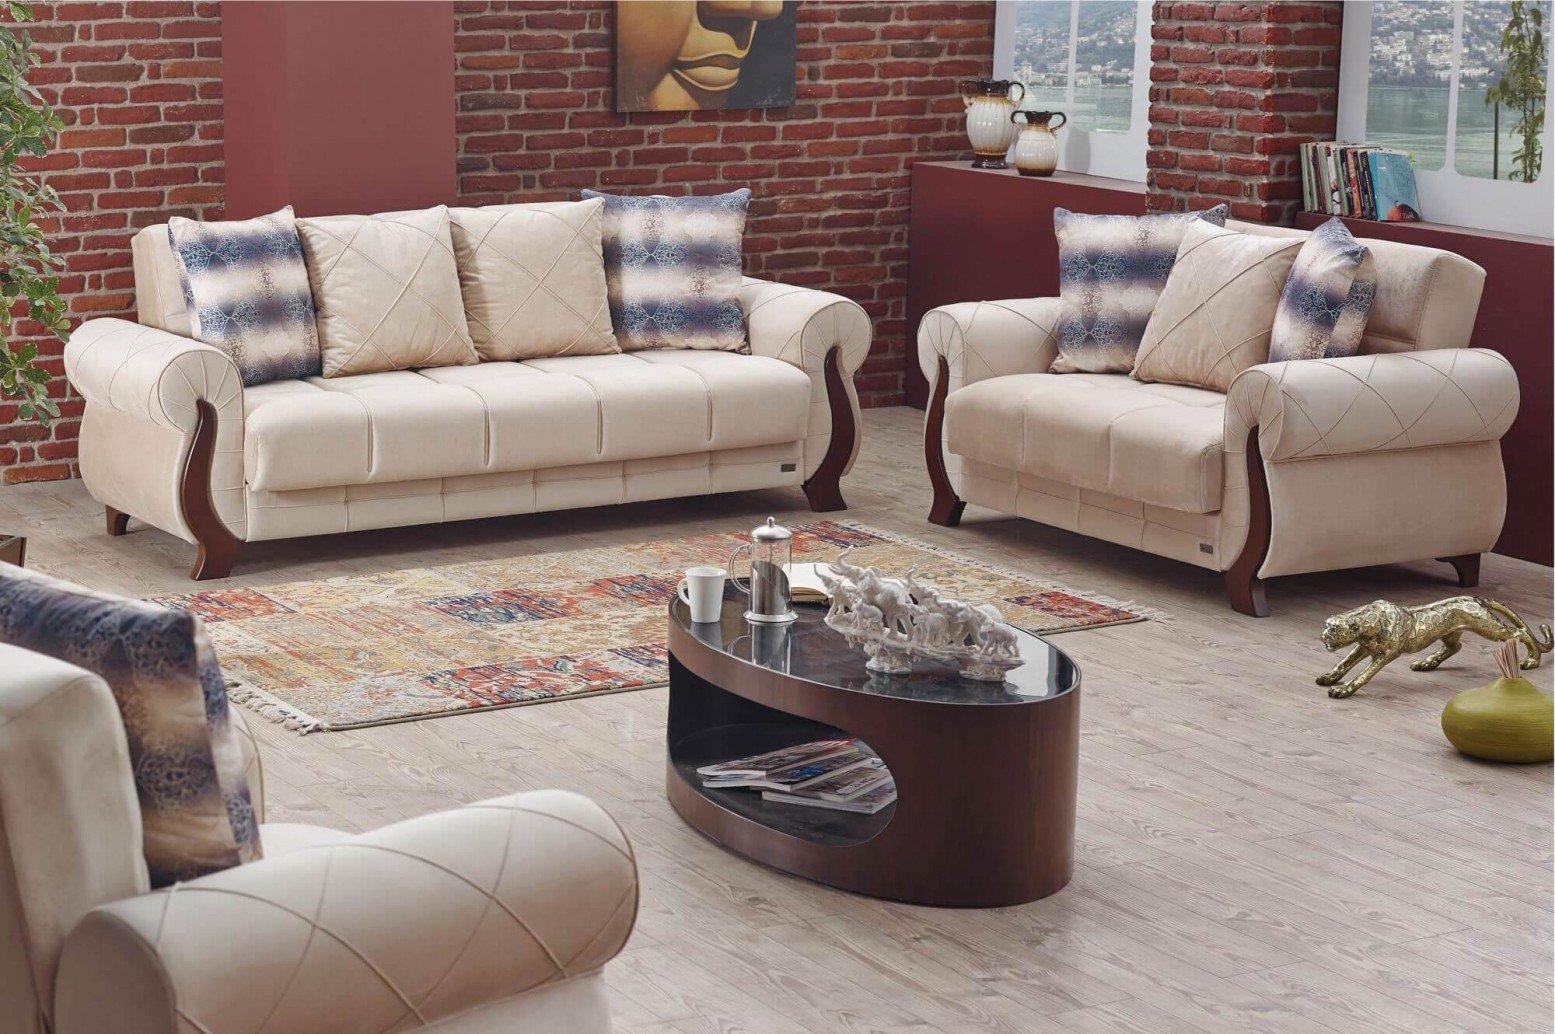 Ontario 2 Piece Living Room Set Buy Online At Best Price throughout Living Room Set On Sale